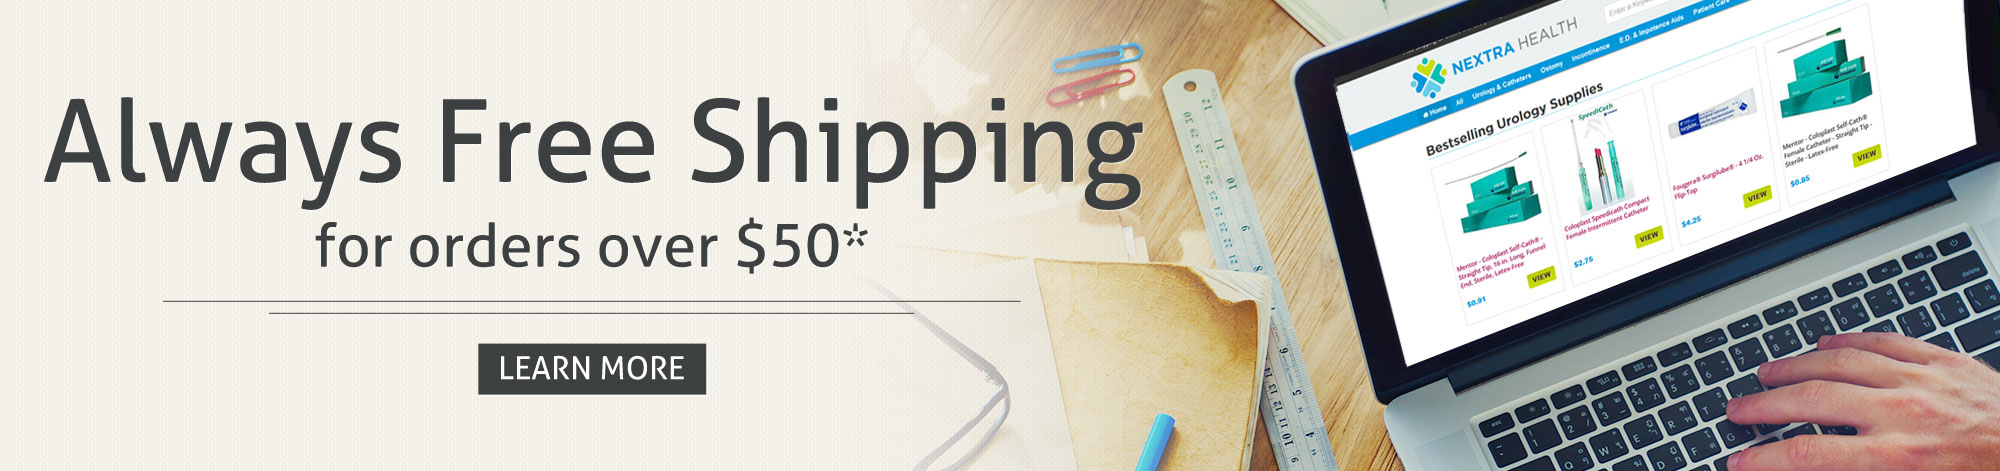 STL Medical Supply - Free Shipping over $50